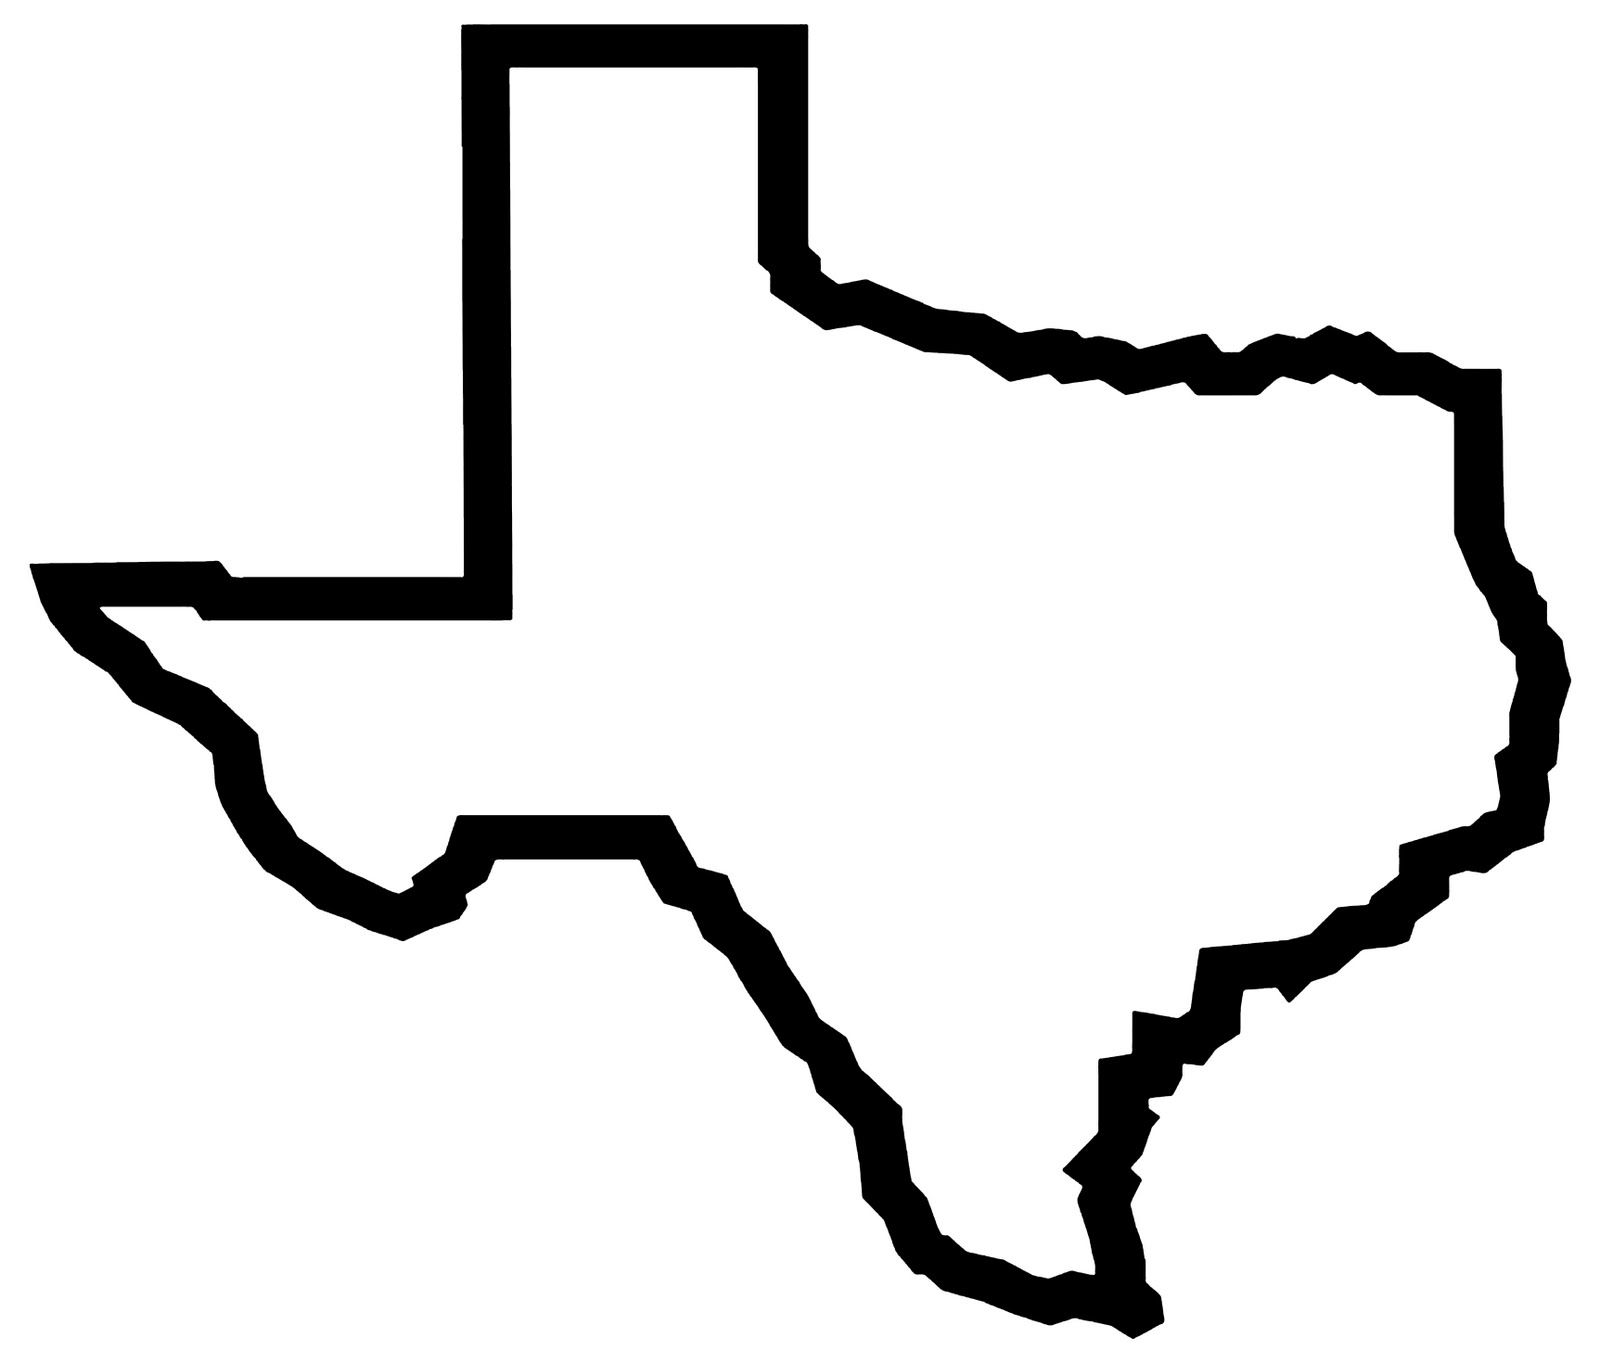 svg royalty free library Texas shape clipart. Outline free images wildcard